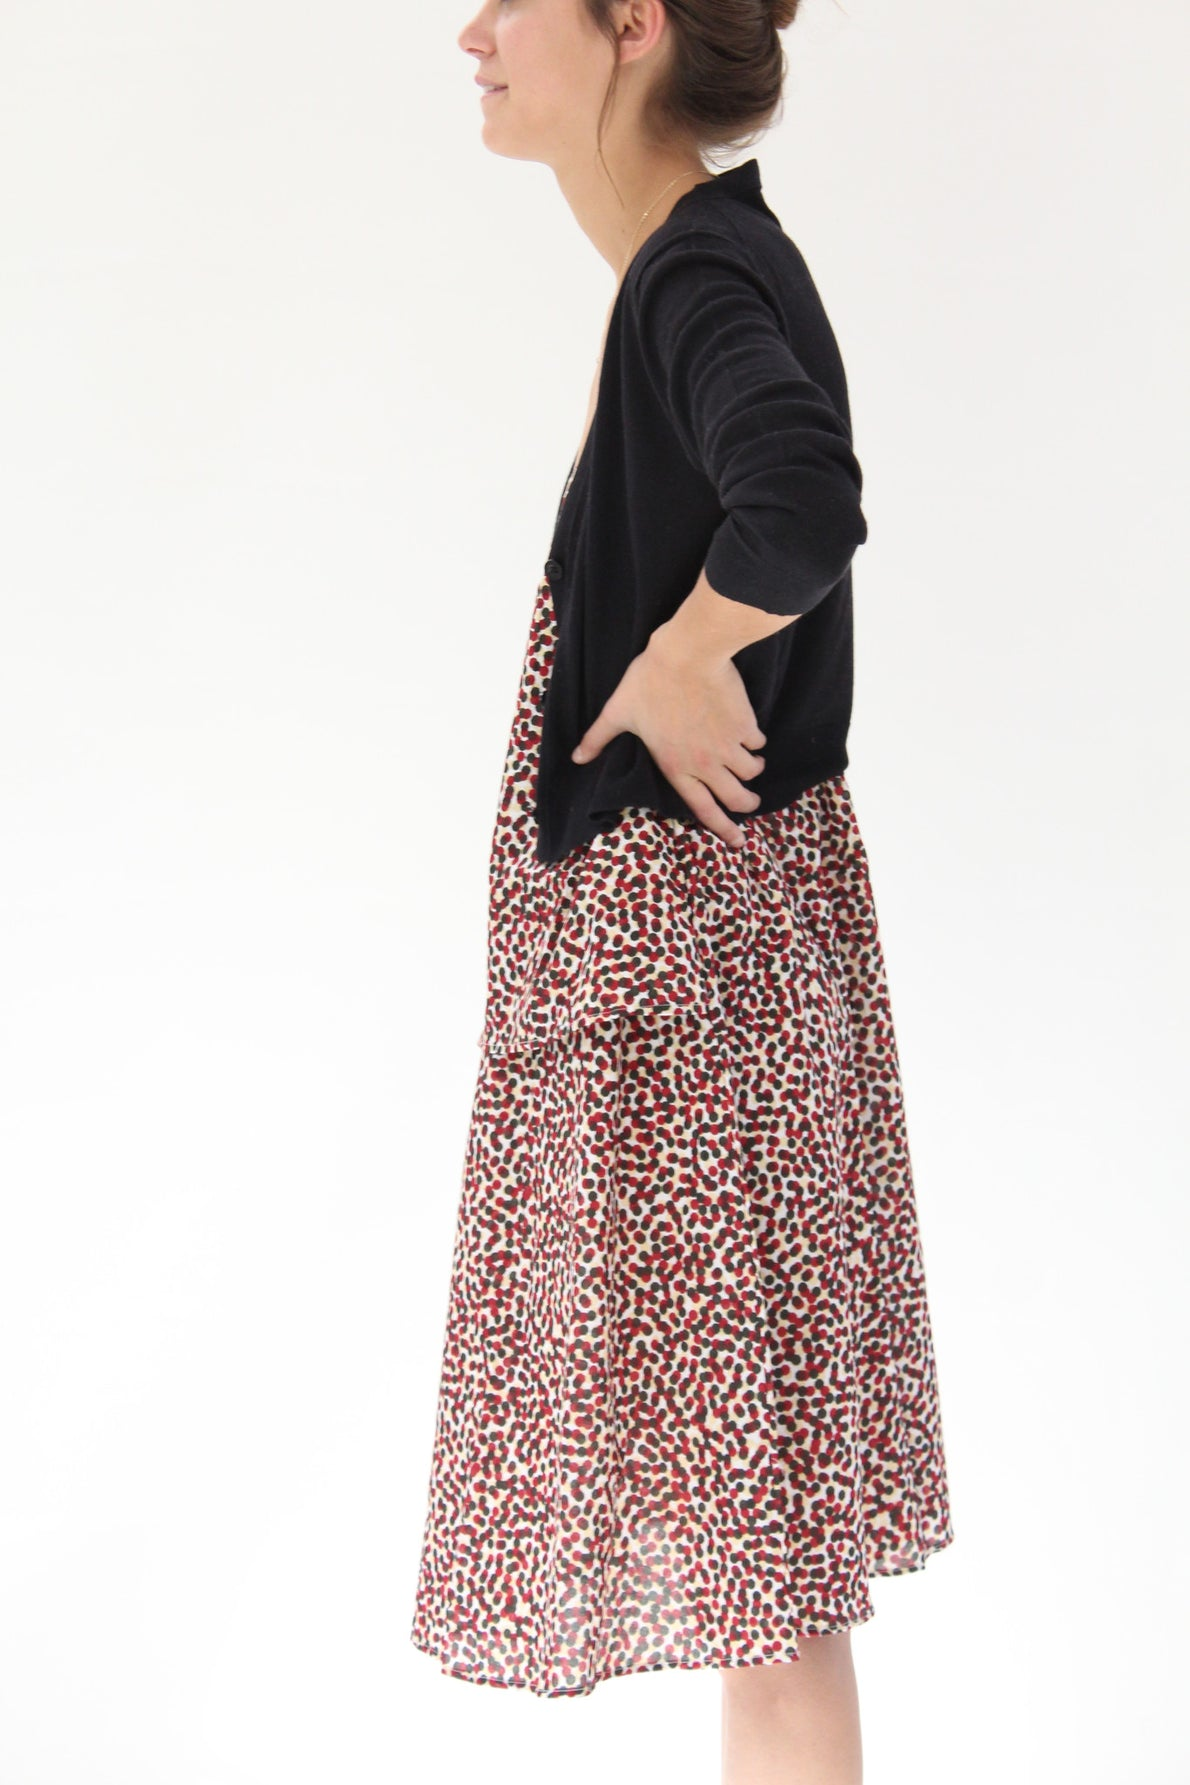 Kowtow Between The Lines Dress